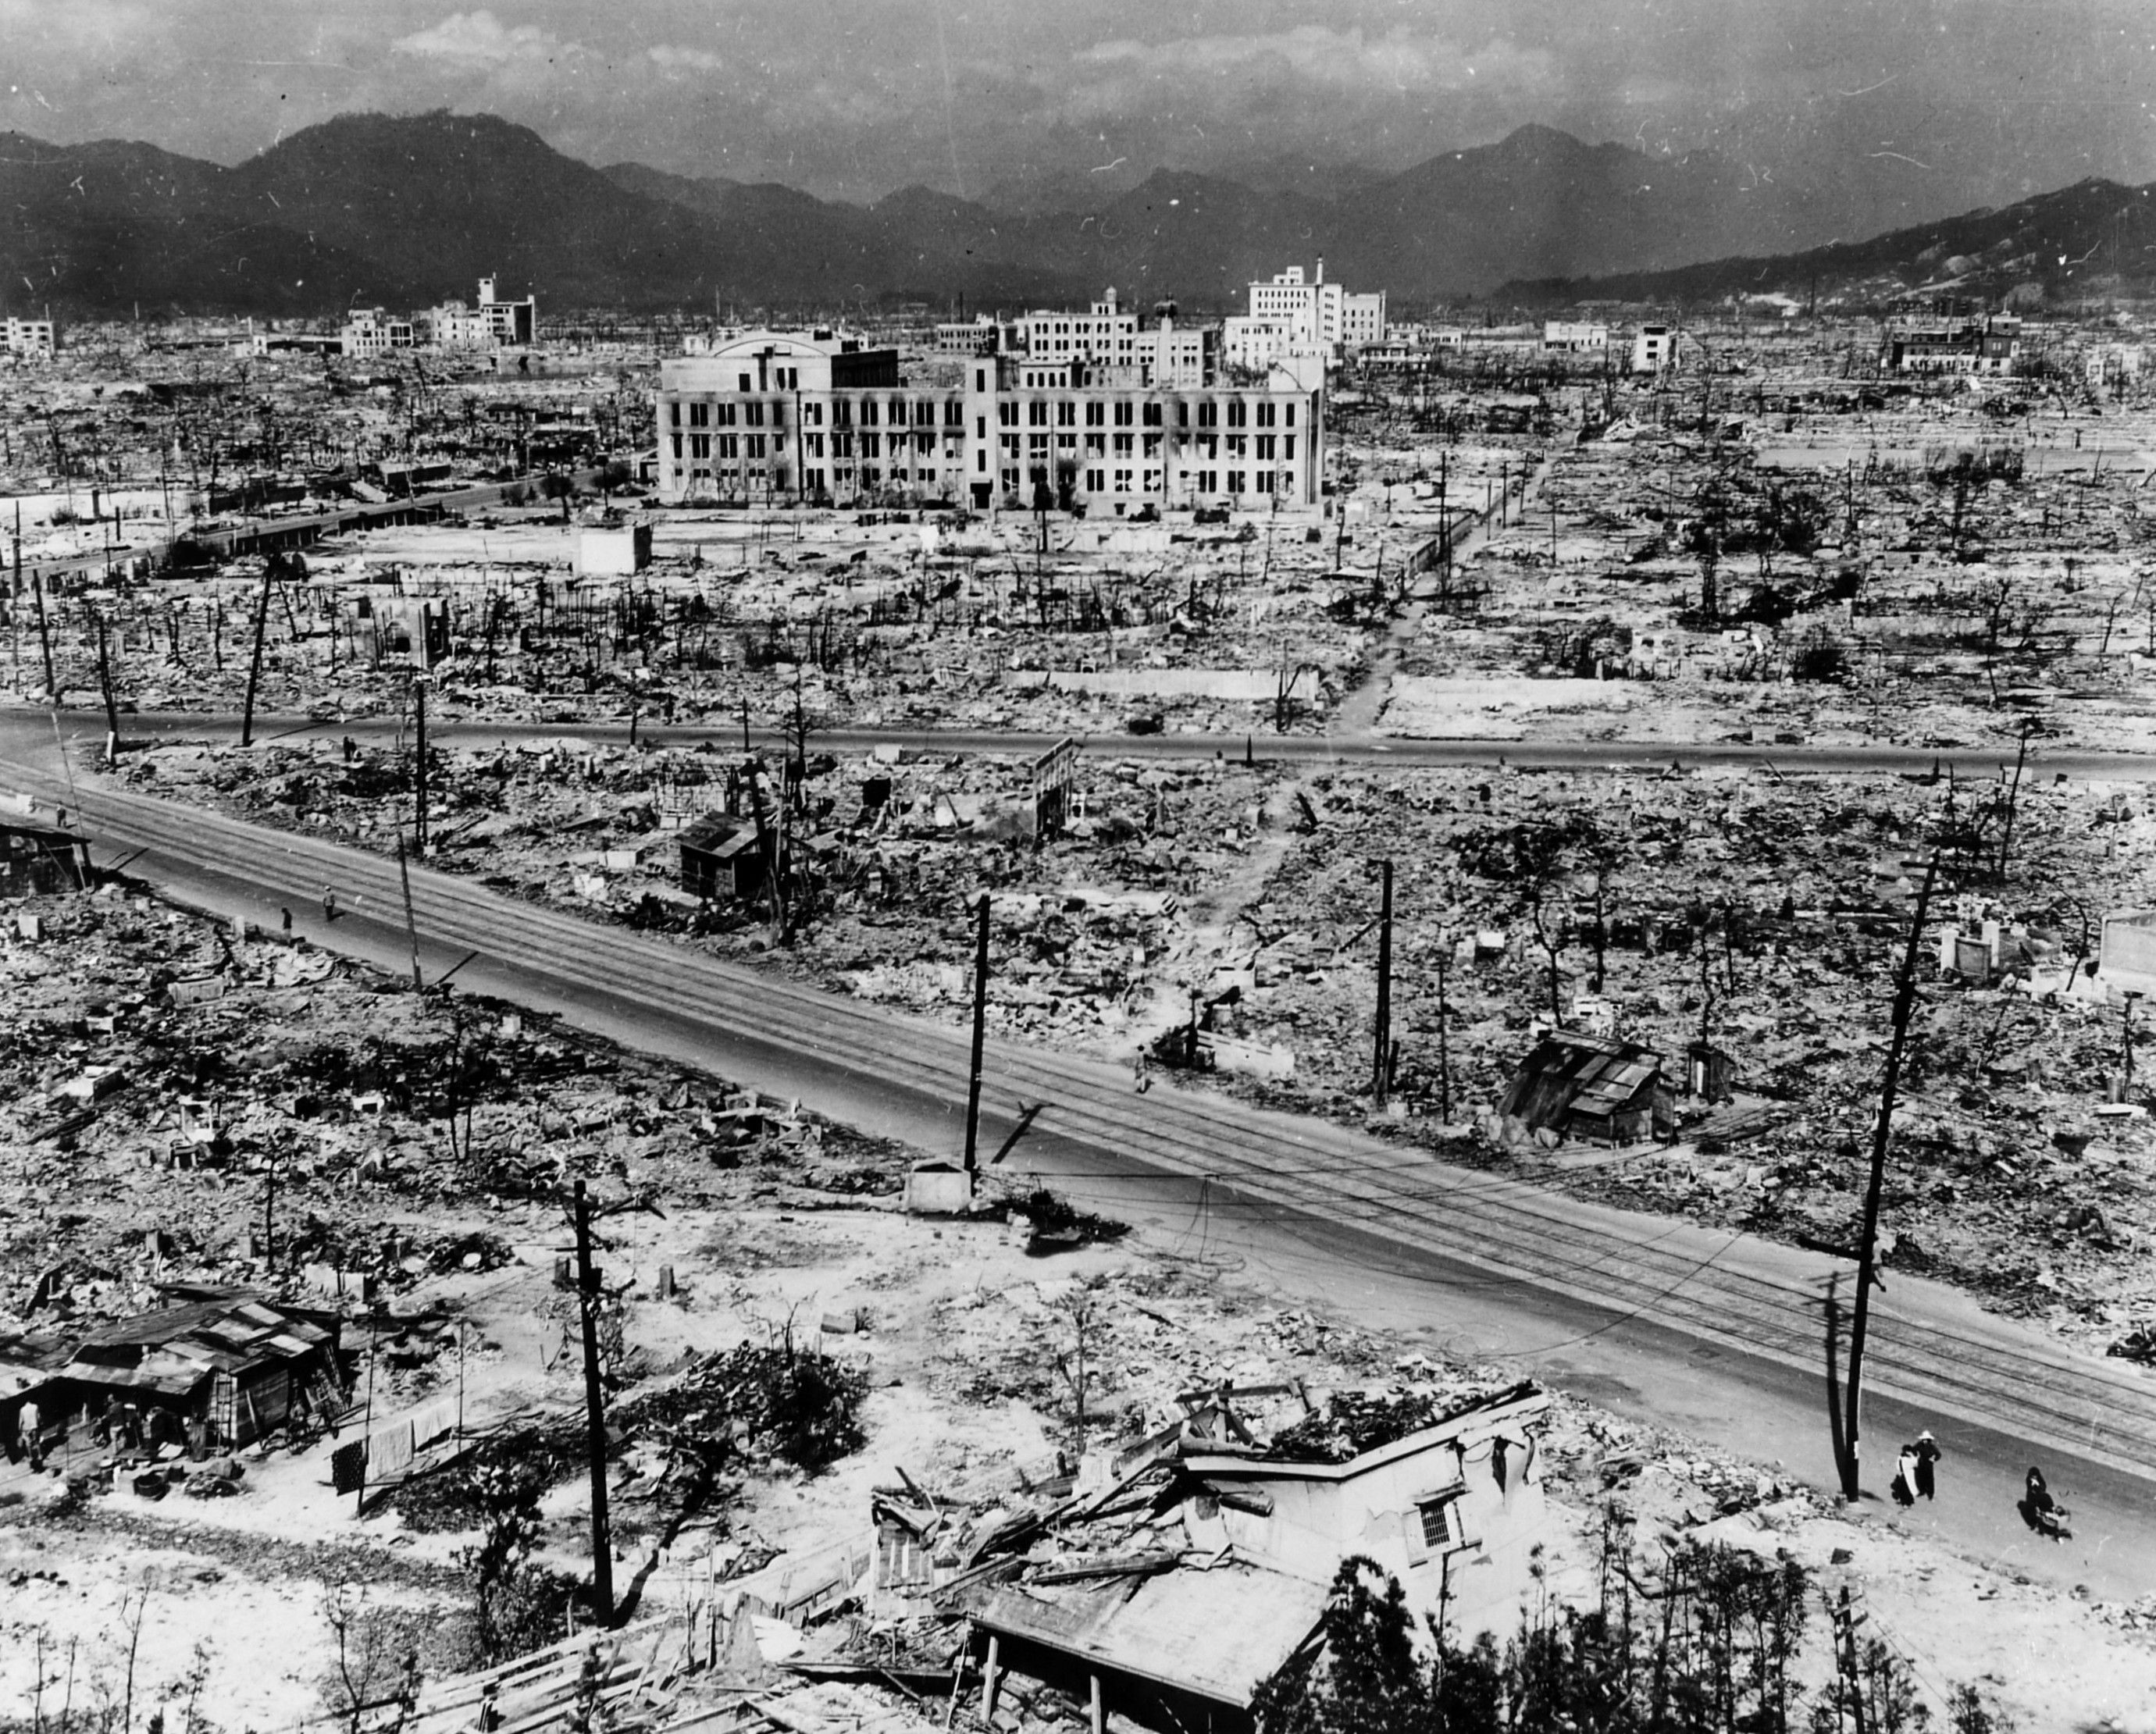 a history of war in hiroshima Hiroshima and nagasaki bombing timeline  atomic bombing of hiroshima and nagasaki world war ii database  a history of the 509th composite group as told by .